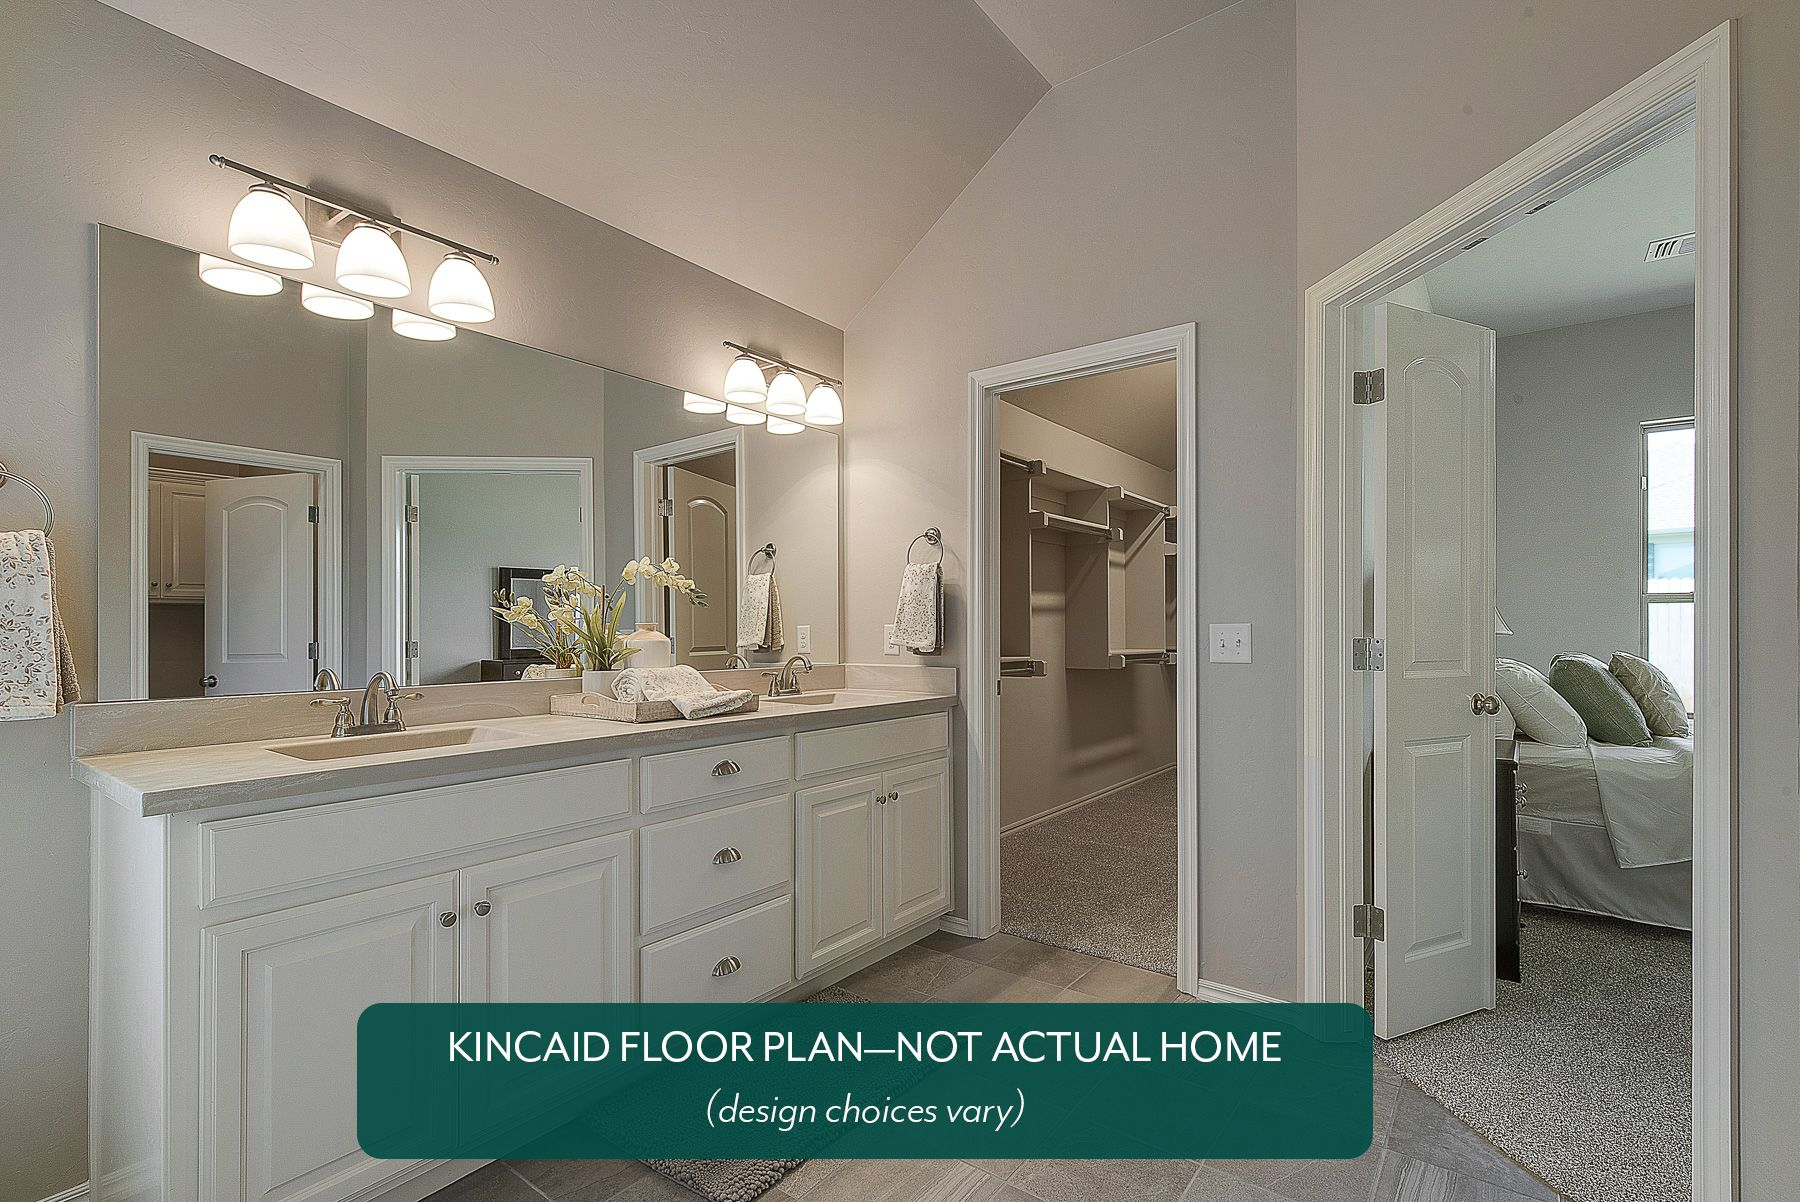 Bathroom featured in the 809 Scully Road By Ideal Homes in Oklahoma City, OK